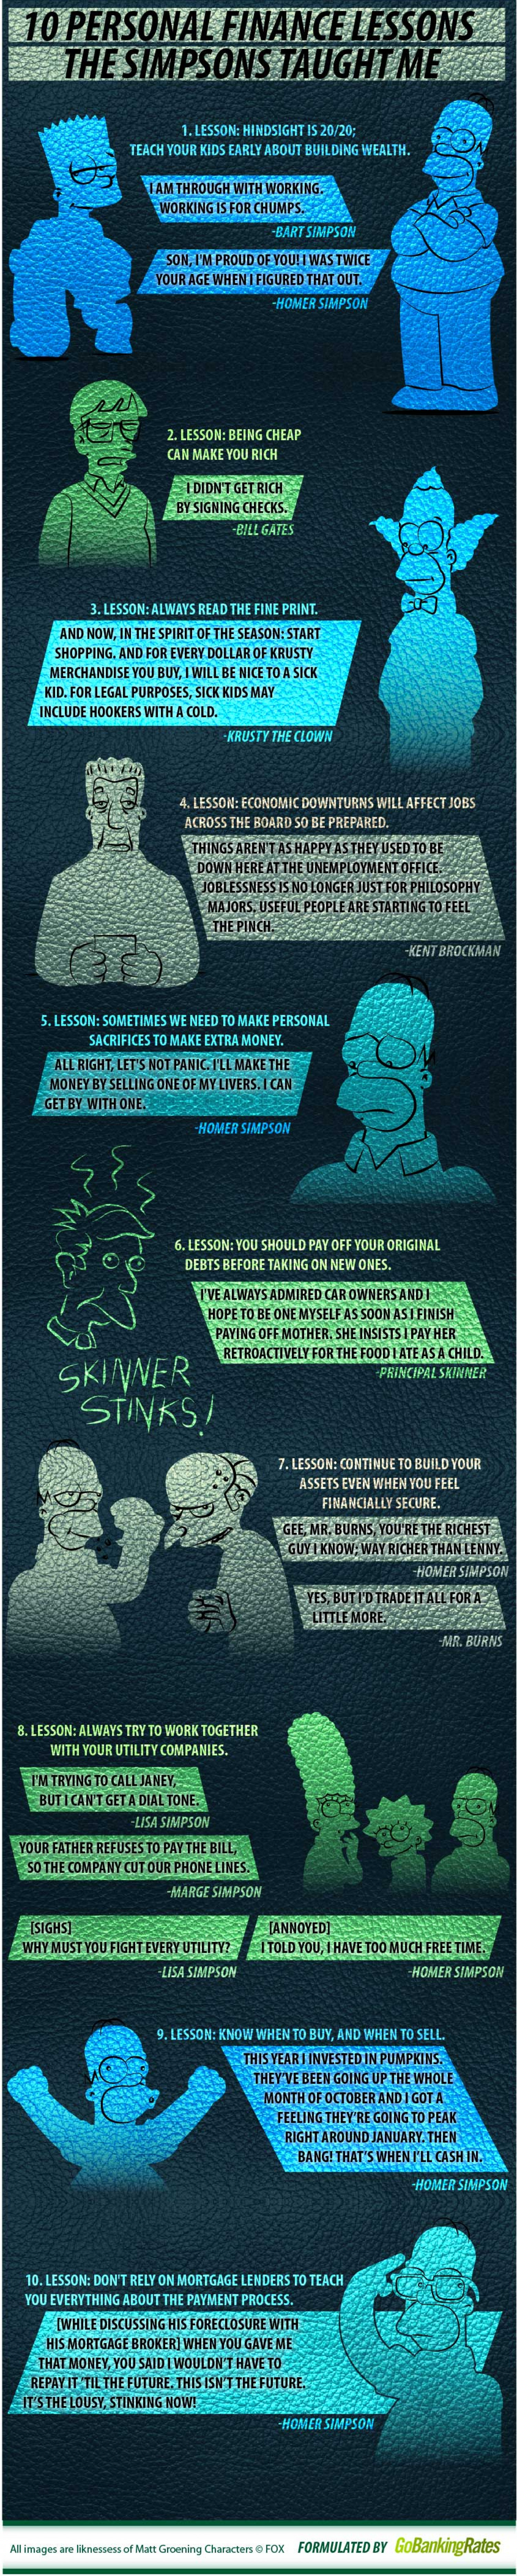 10 Personal Finance Tips from the Simpsons Infographic